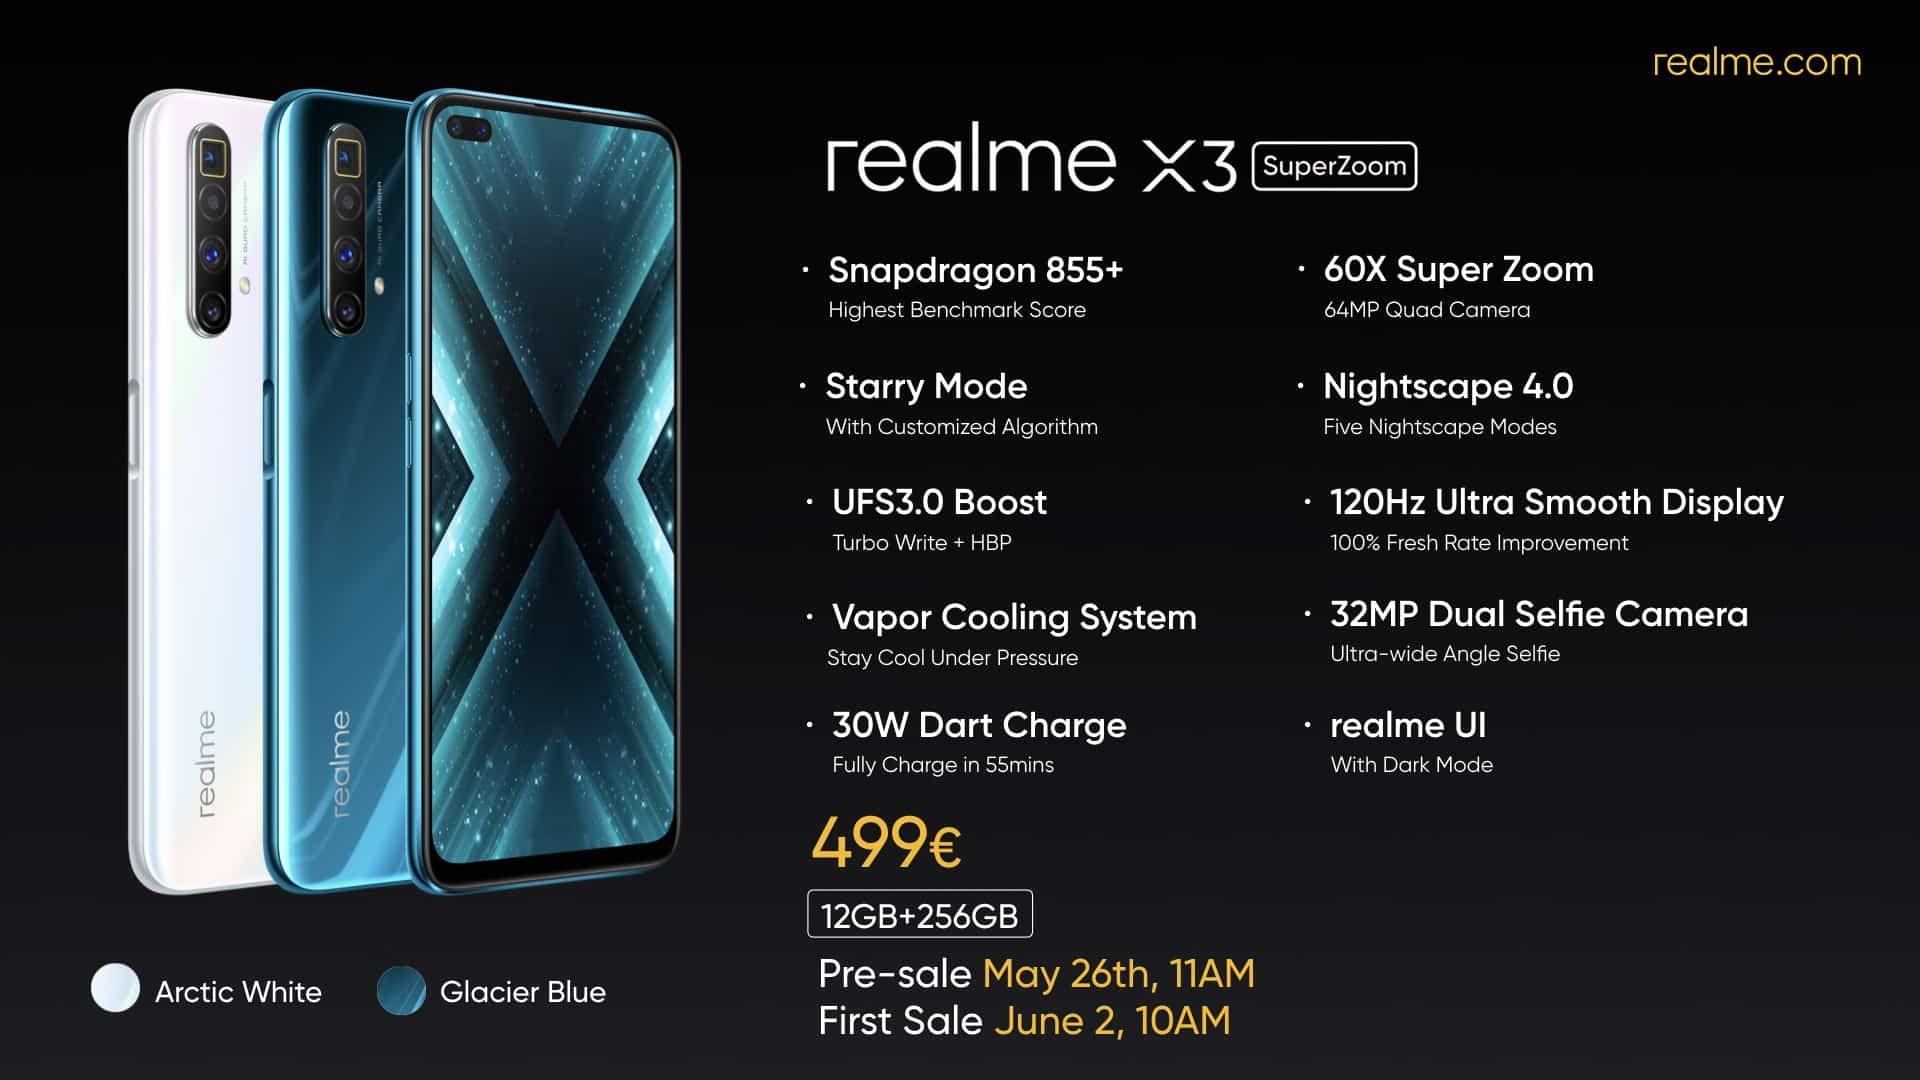 Realme X3 SuperZoom Is Official With 120Hz Display & Periscope Camera